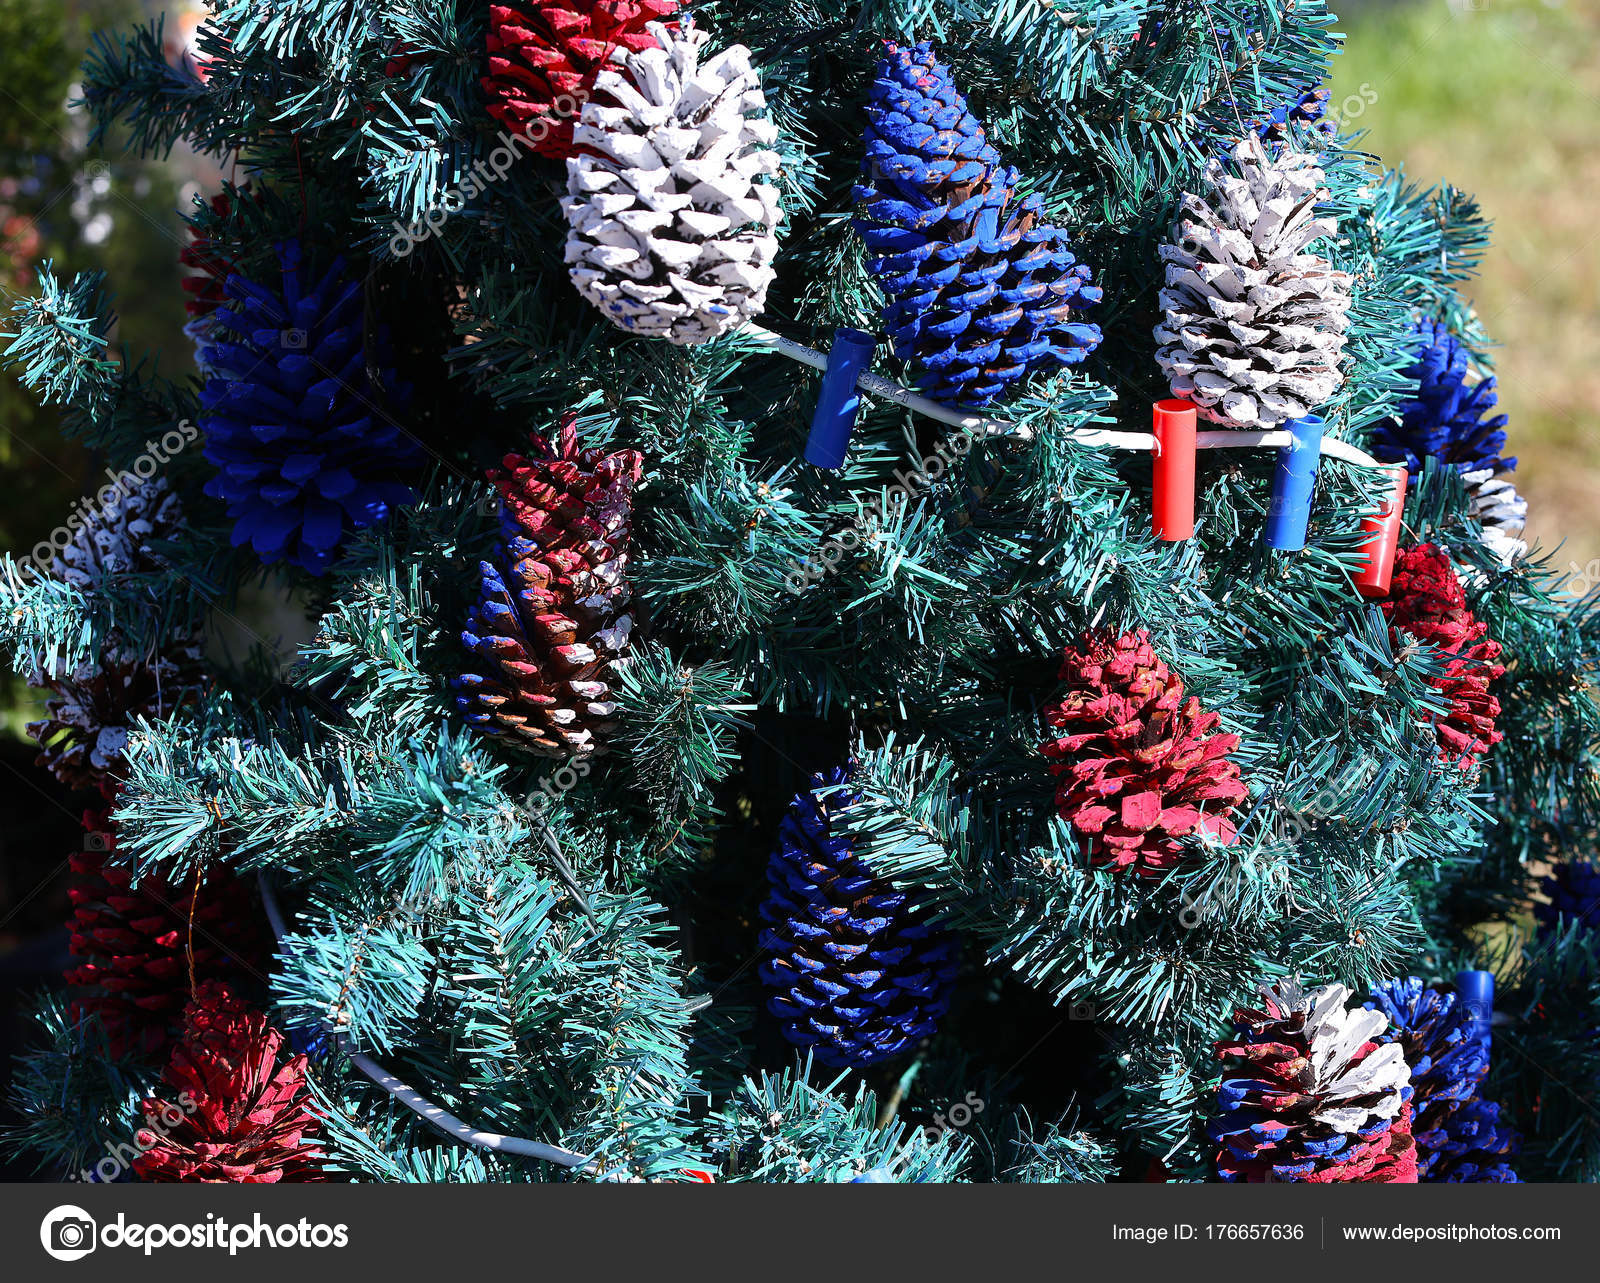 Patriotic Christmas Tree.Patriotic Christmas Tree In Fort Myers Florida Usa Stock